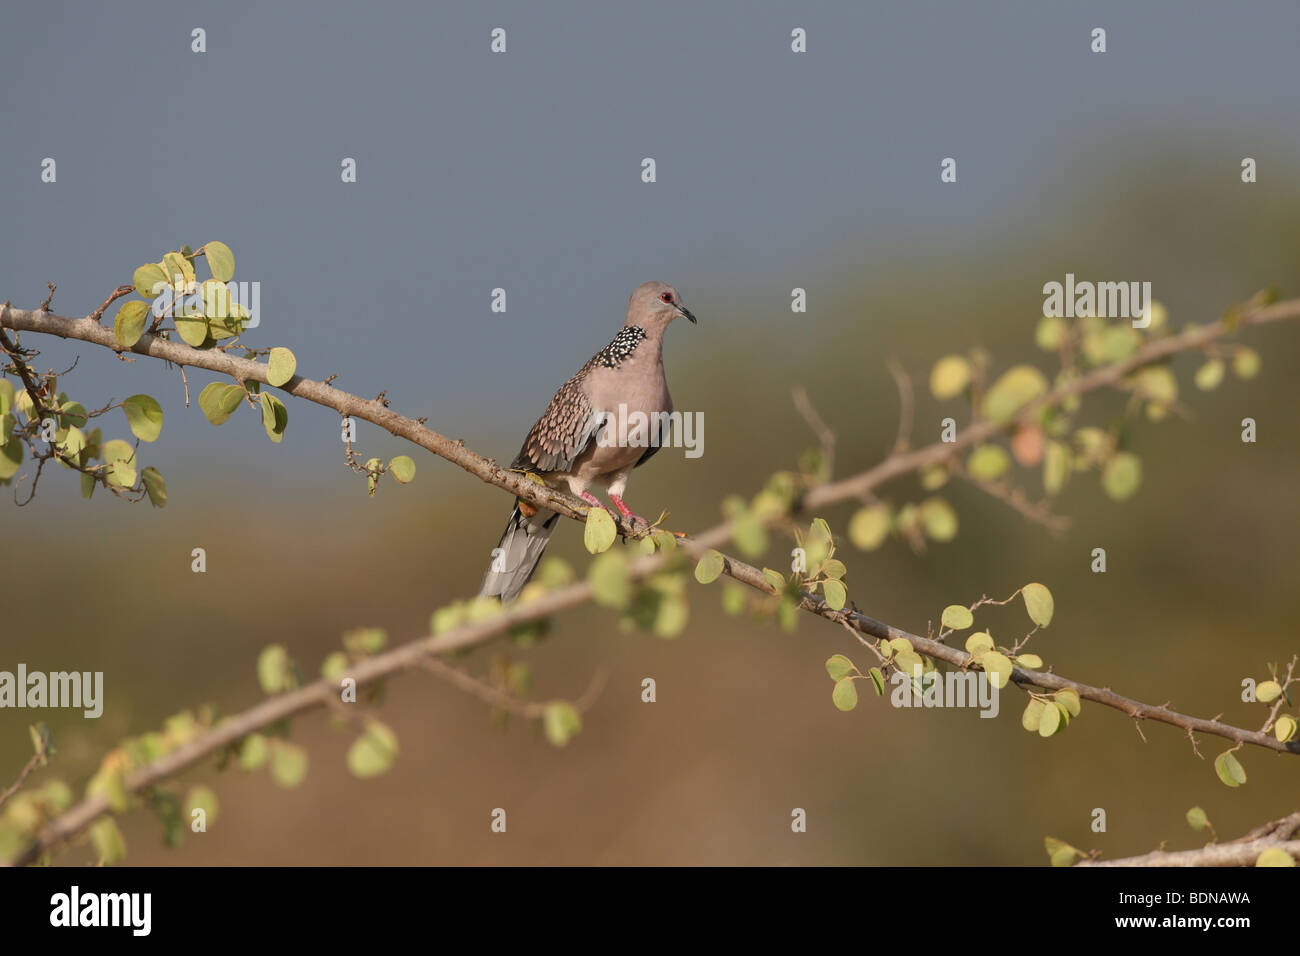 Spotted Dove (Streptopelia chinensis) also known as the Spotted Turtle Dove photographed in Sri Lanka - Stock Image